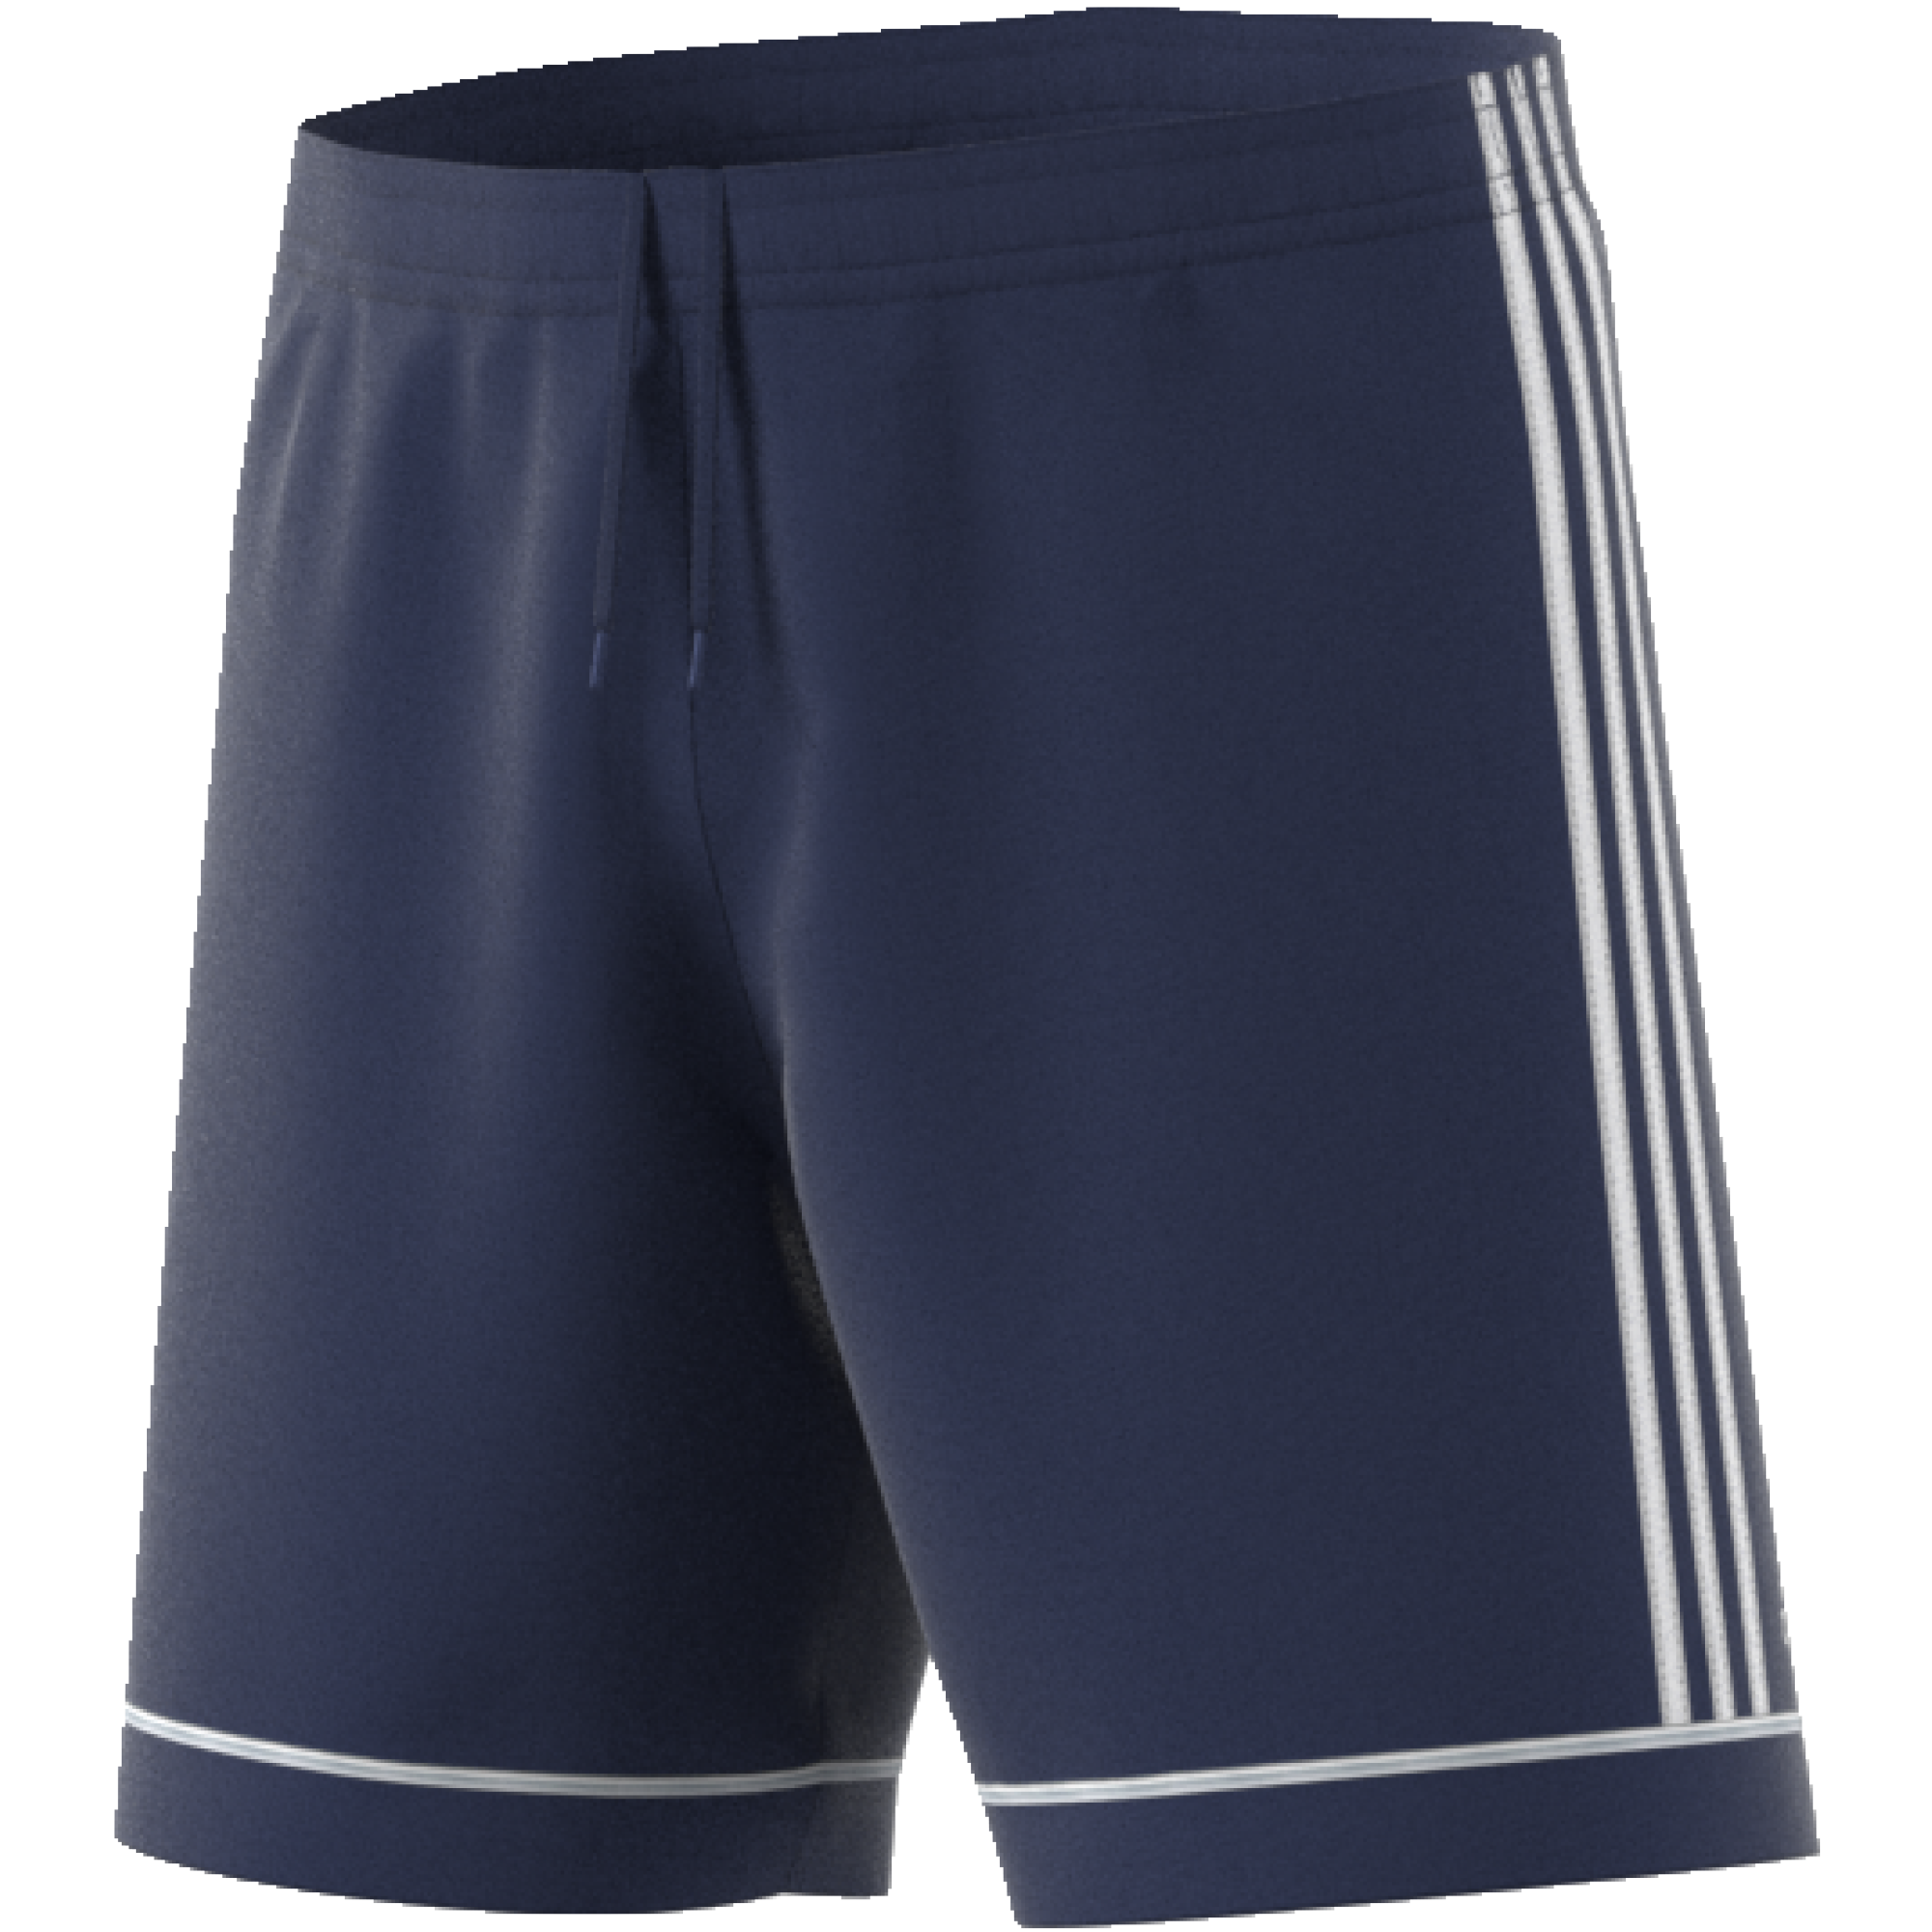 Liverpool John Moore Uni CC Adidas Navy Training Shorts